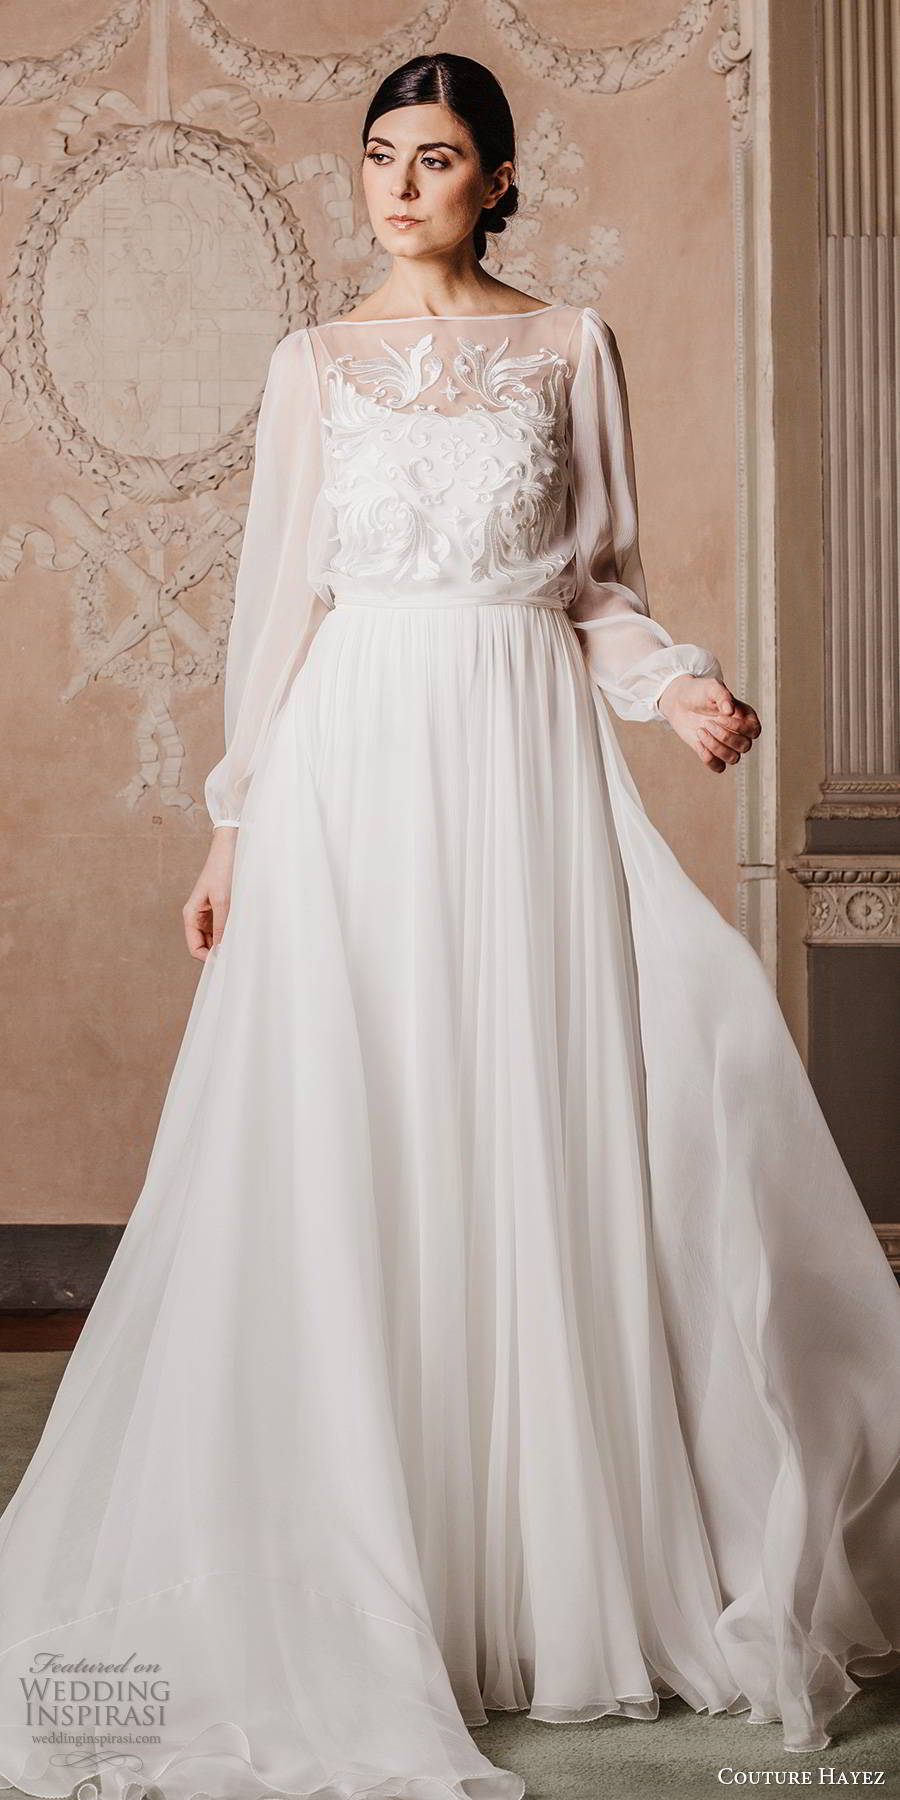 couture hayez 2020 bridal sheer bishop sleeves bateau neckline embellished bodice a line wedding dress (5) boho chic romantic chapel train mv